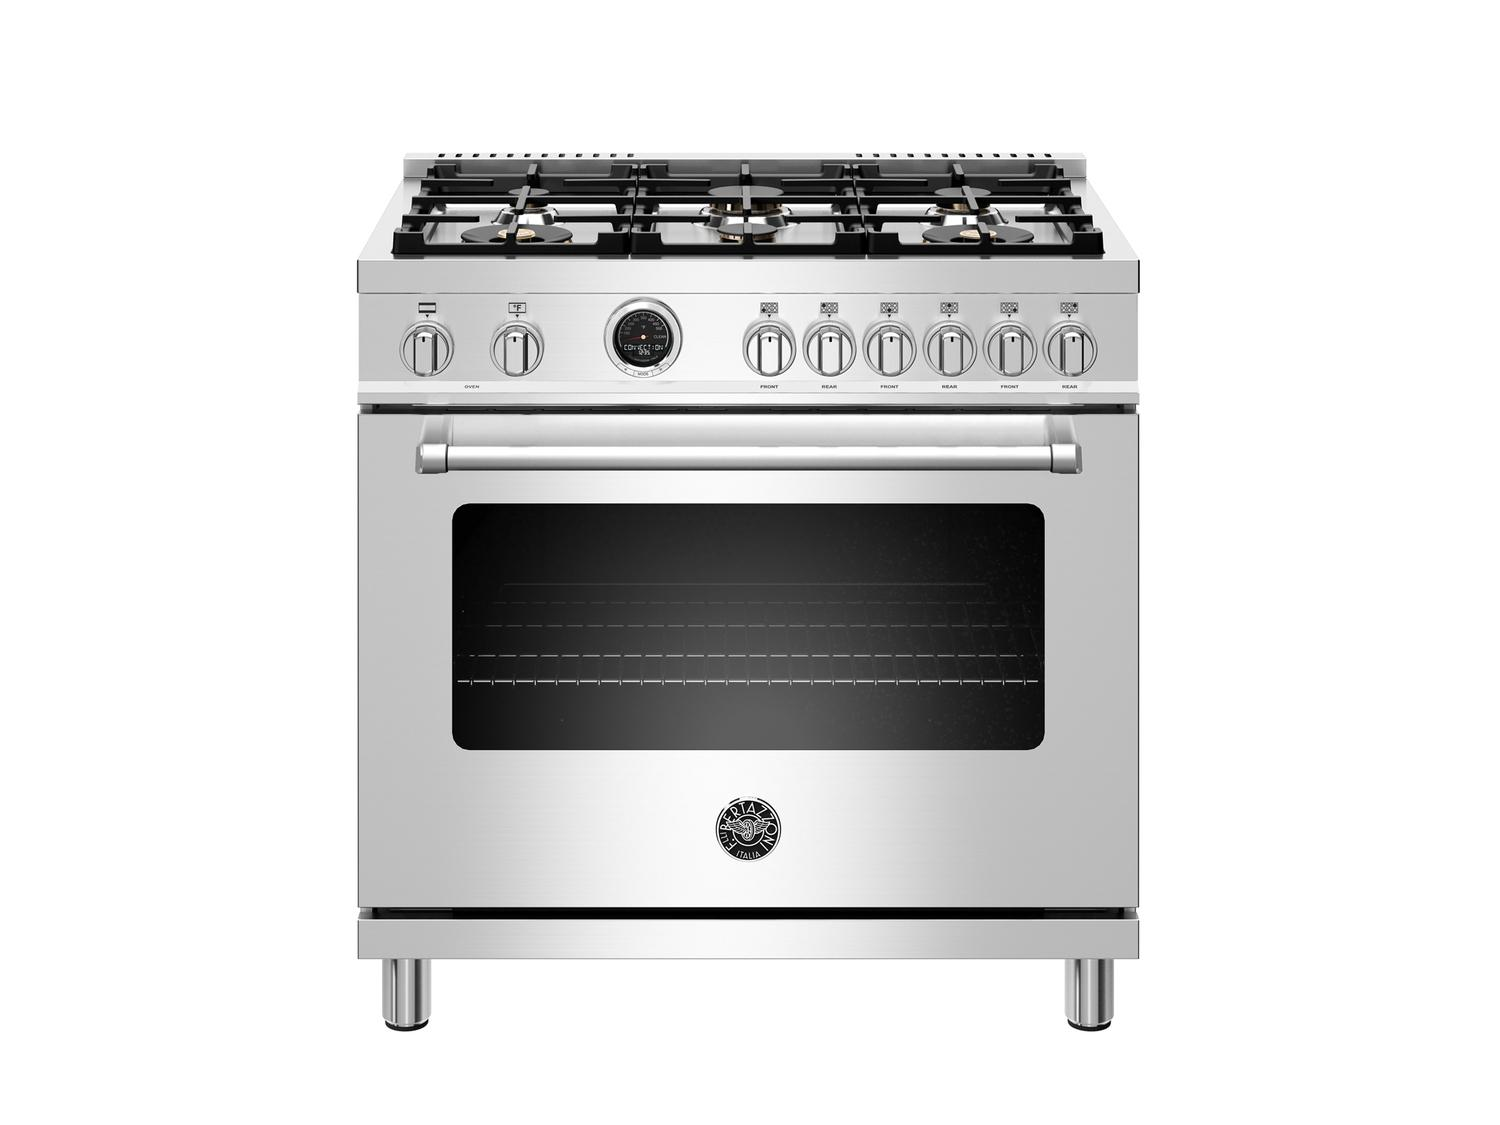 Bertazzoni36 Inch Dual Fuel Range, 6 Brass Burners, Electric Self-Clean Oven Stainless Steel